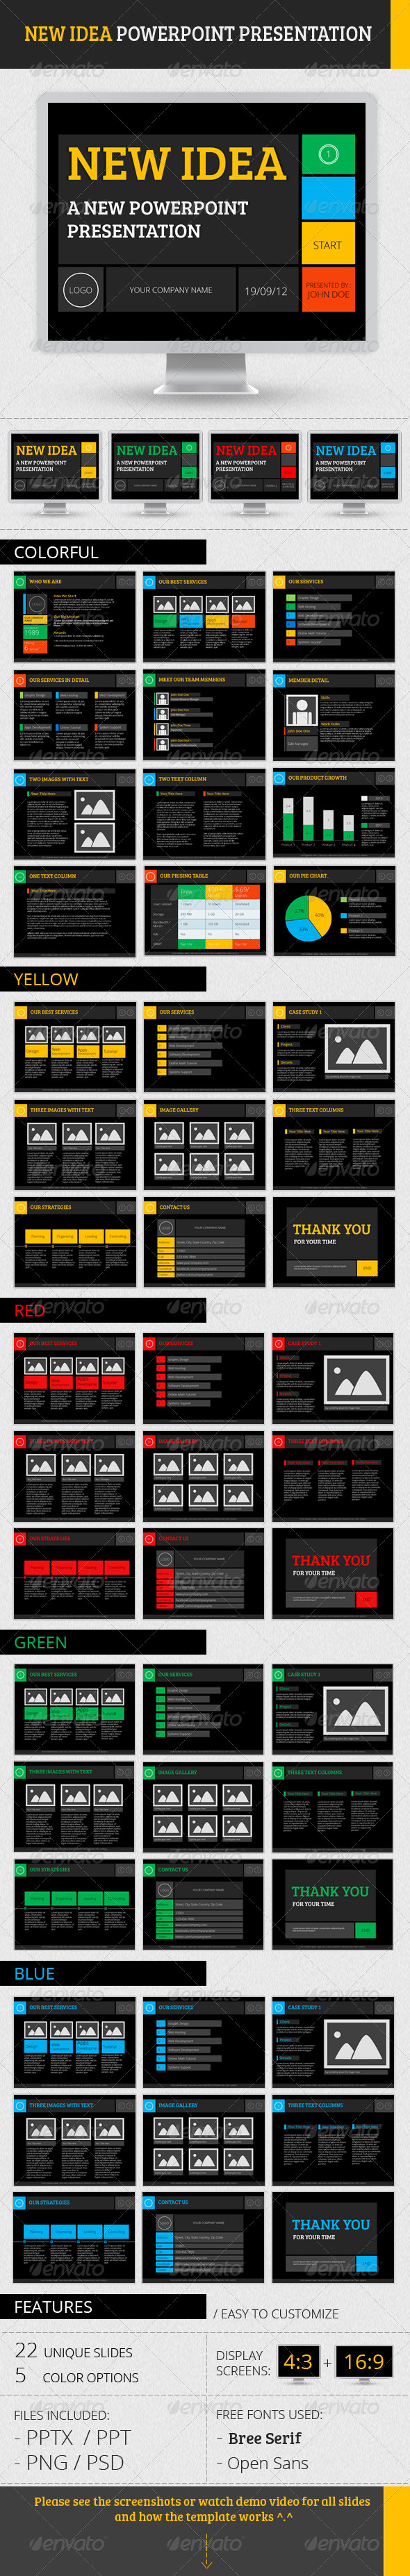 New Idea PowerPoint Presentation - Powerpoint Templates Presentation Templates